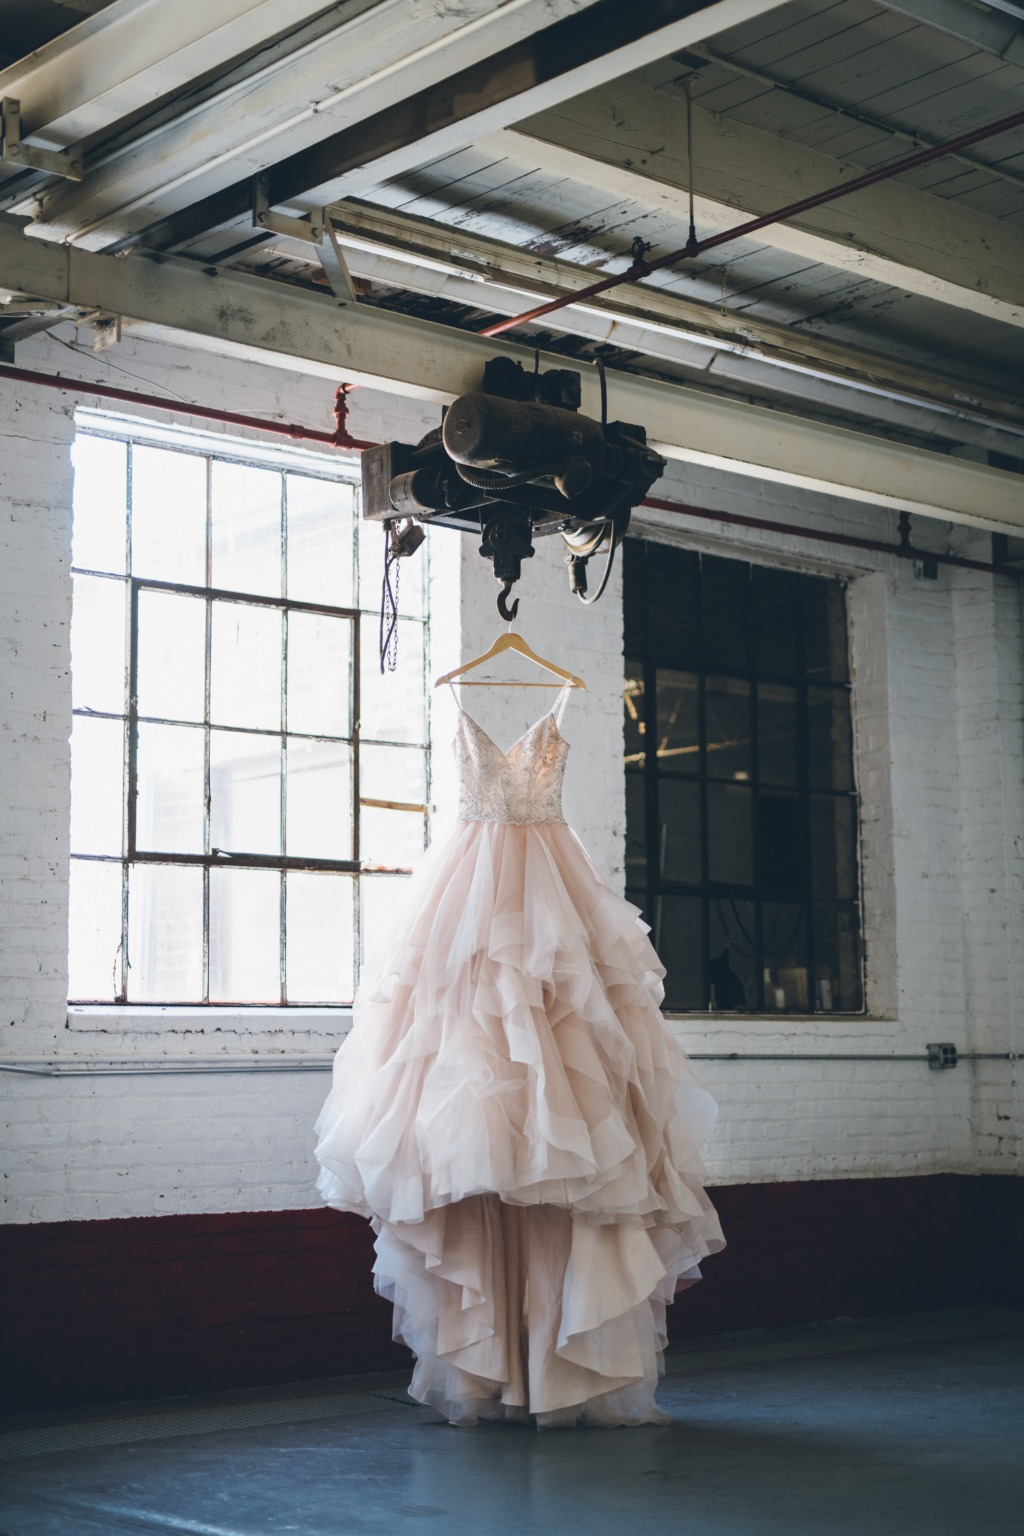 Grace + Ivory's Annette dress. Organza and tulle horsehair braid skirt. Blush with ivory accents. Hand-beaded top details. Every dress